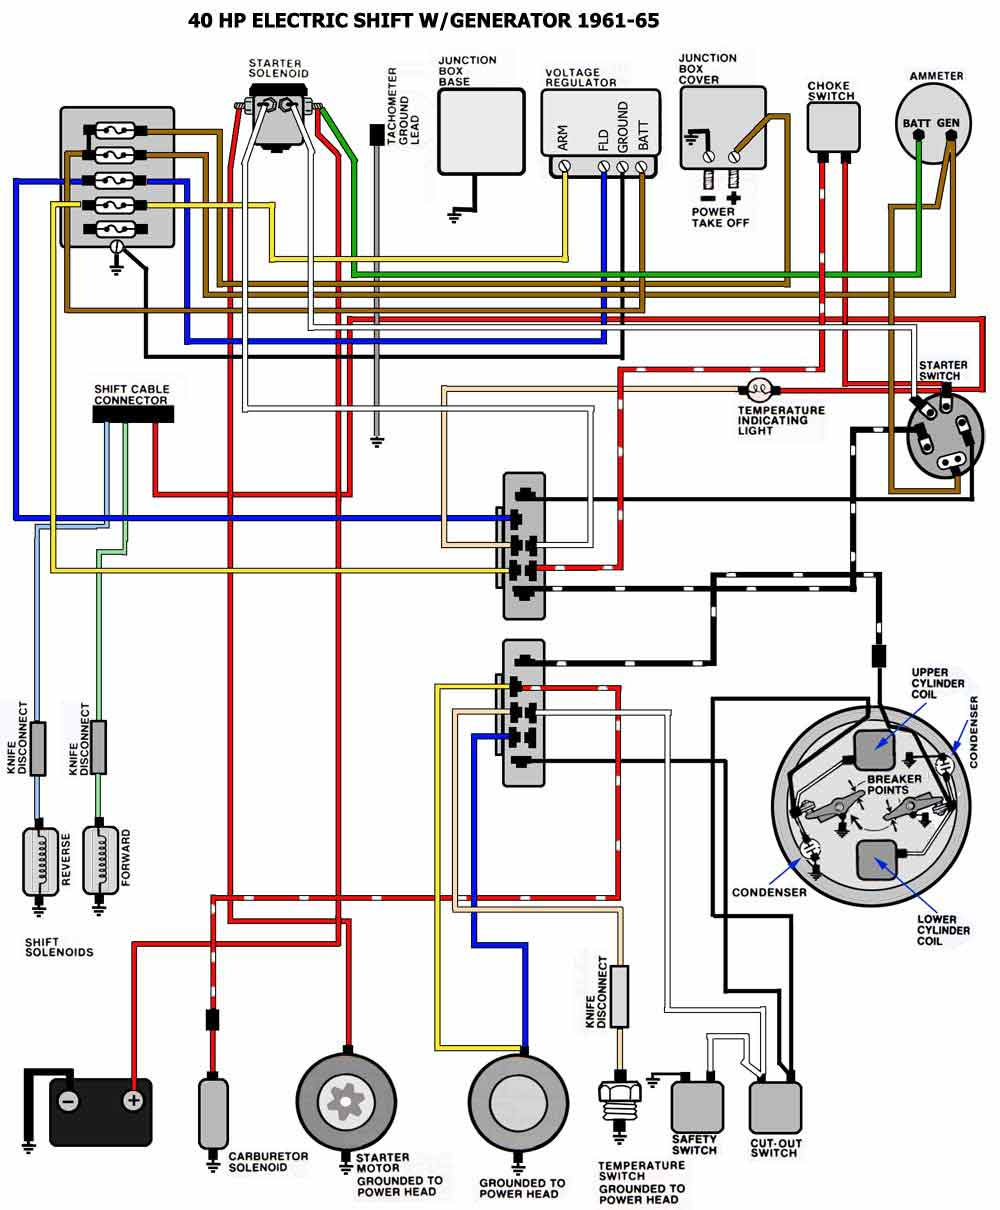 evinrude 225 e tec ignition switch wiring diagram 60hp evinrude ignition switch wiring diagram evinrude johnson outboard wiring diagrams -- mastertech ... #13